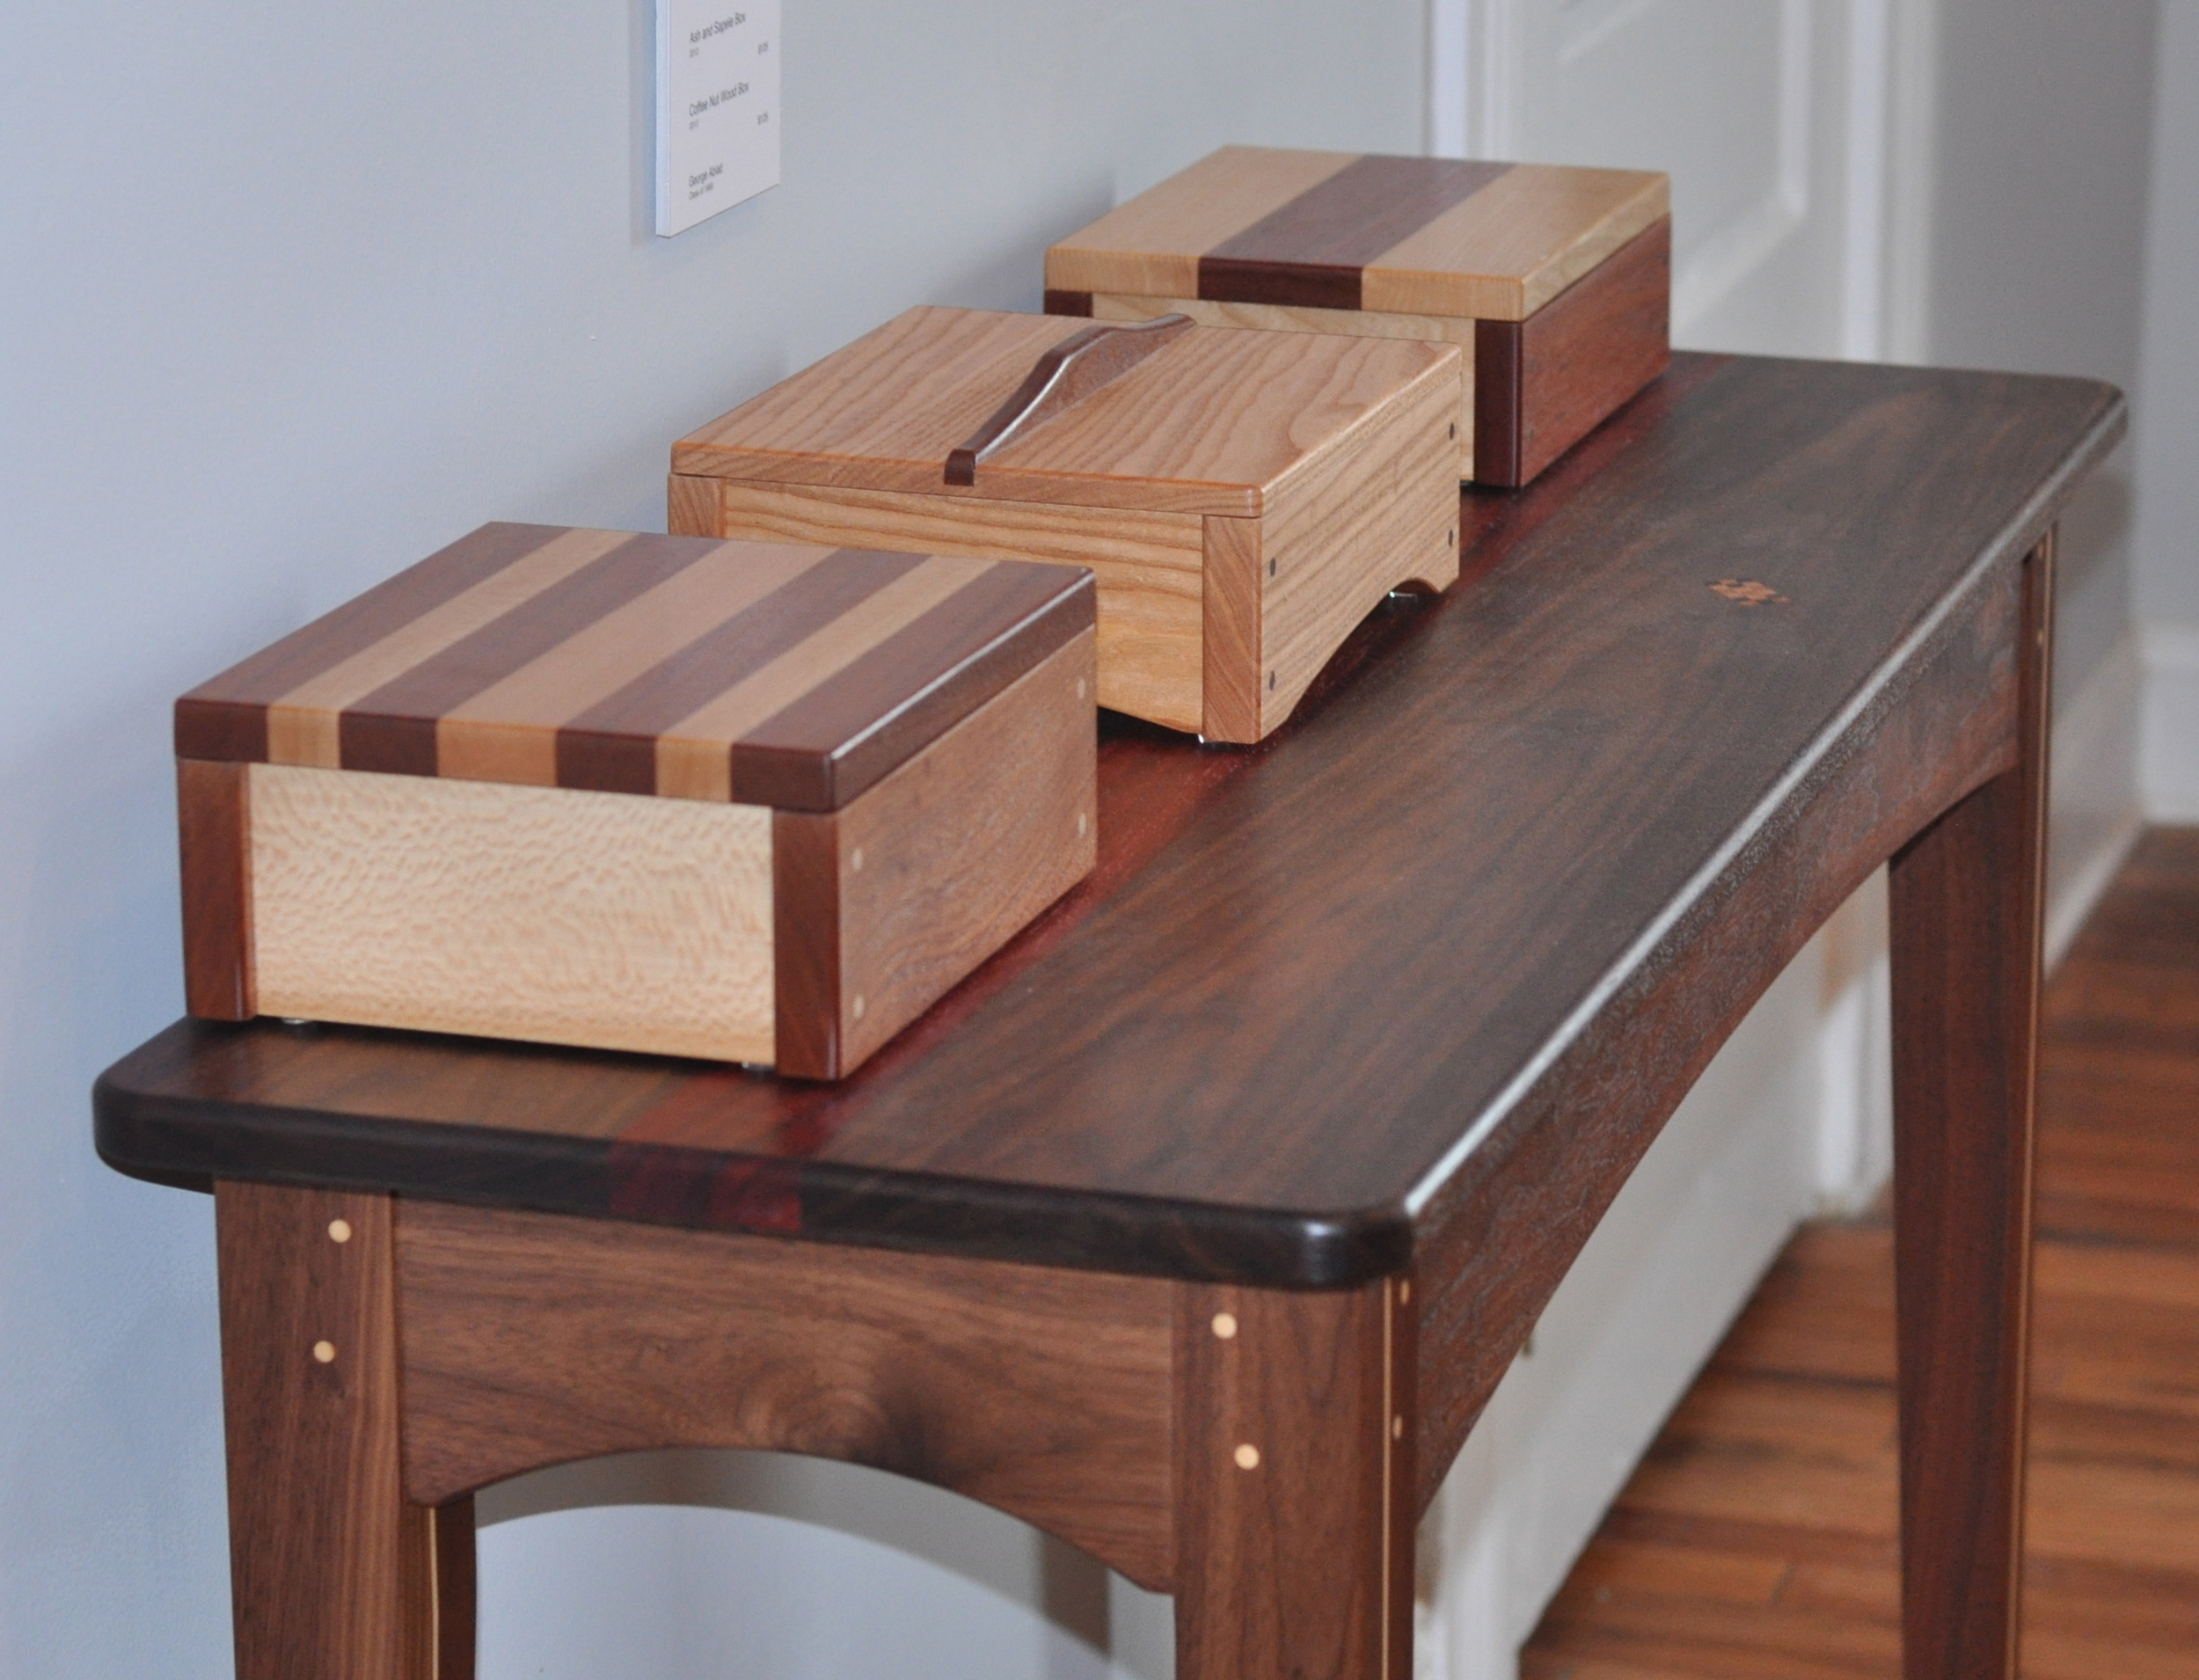 Keepsake Box   Quarter sawn Sycamore and Sapele, 2012    Ash and Sapele Box, 2012    Coffe Nut Wood Box, 2012  Entryway Table Walnut, Maple, African Padouk, 2013  George Abiad Class of 1989